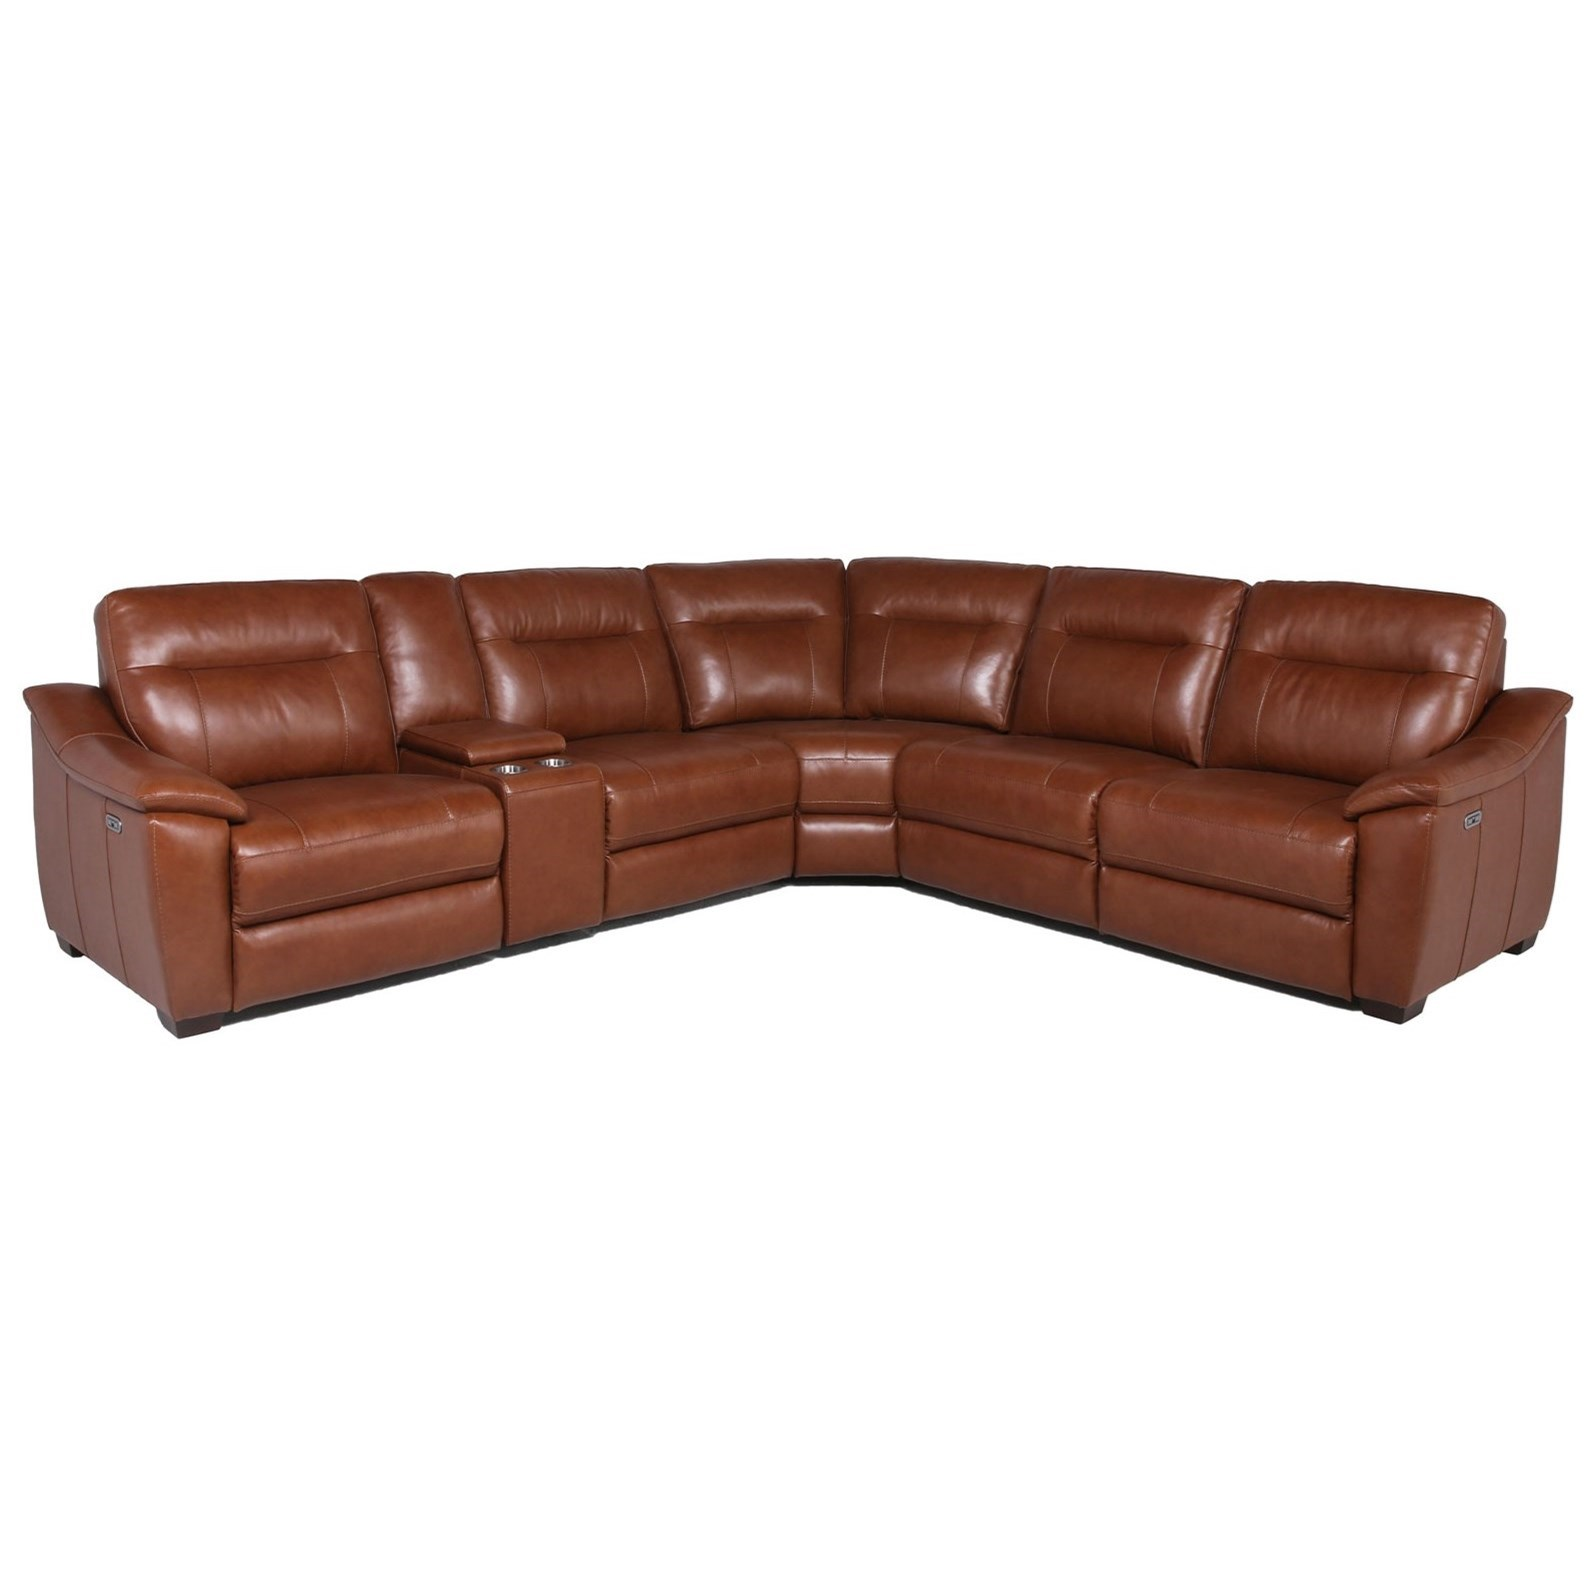 Casa Power Reclining 6-Piece Sectional by Steve Silver at Northeast Factory Direct